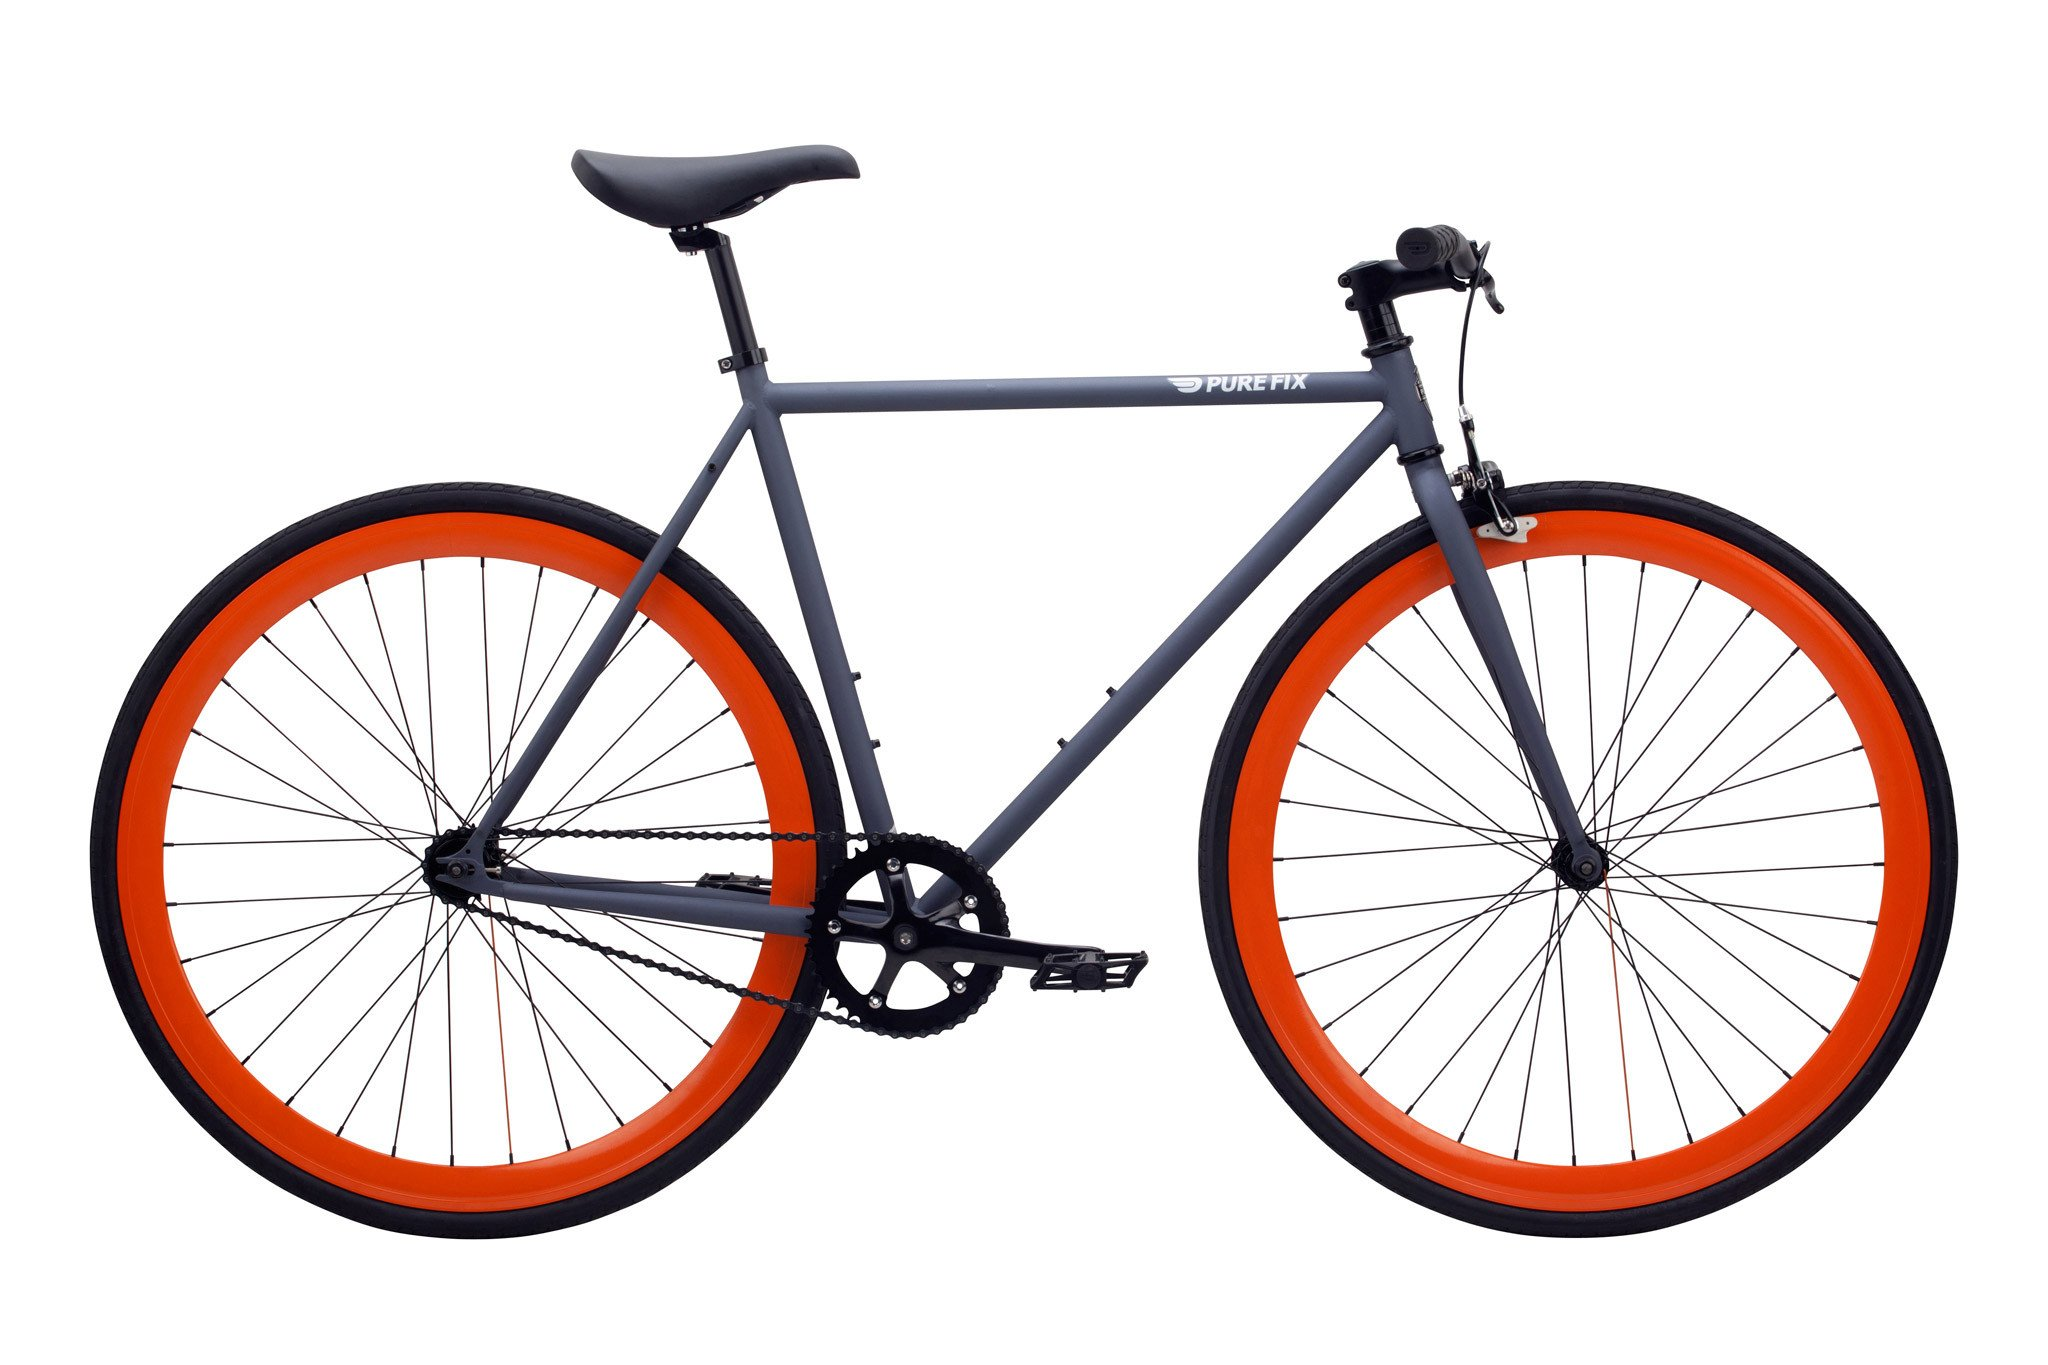 BICICLETA FIXED PUREFIX ORIGINAL THE PAPA XS 47cm